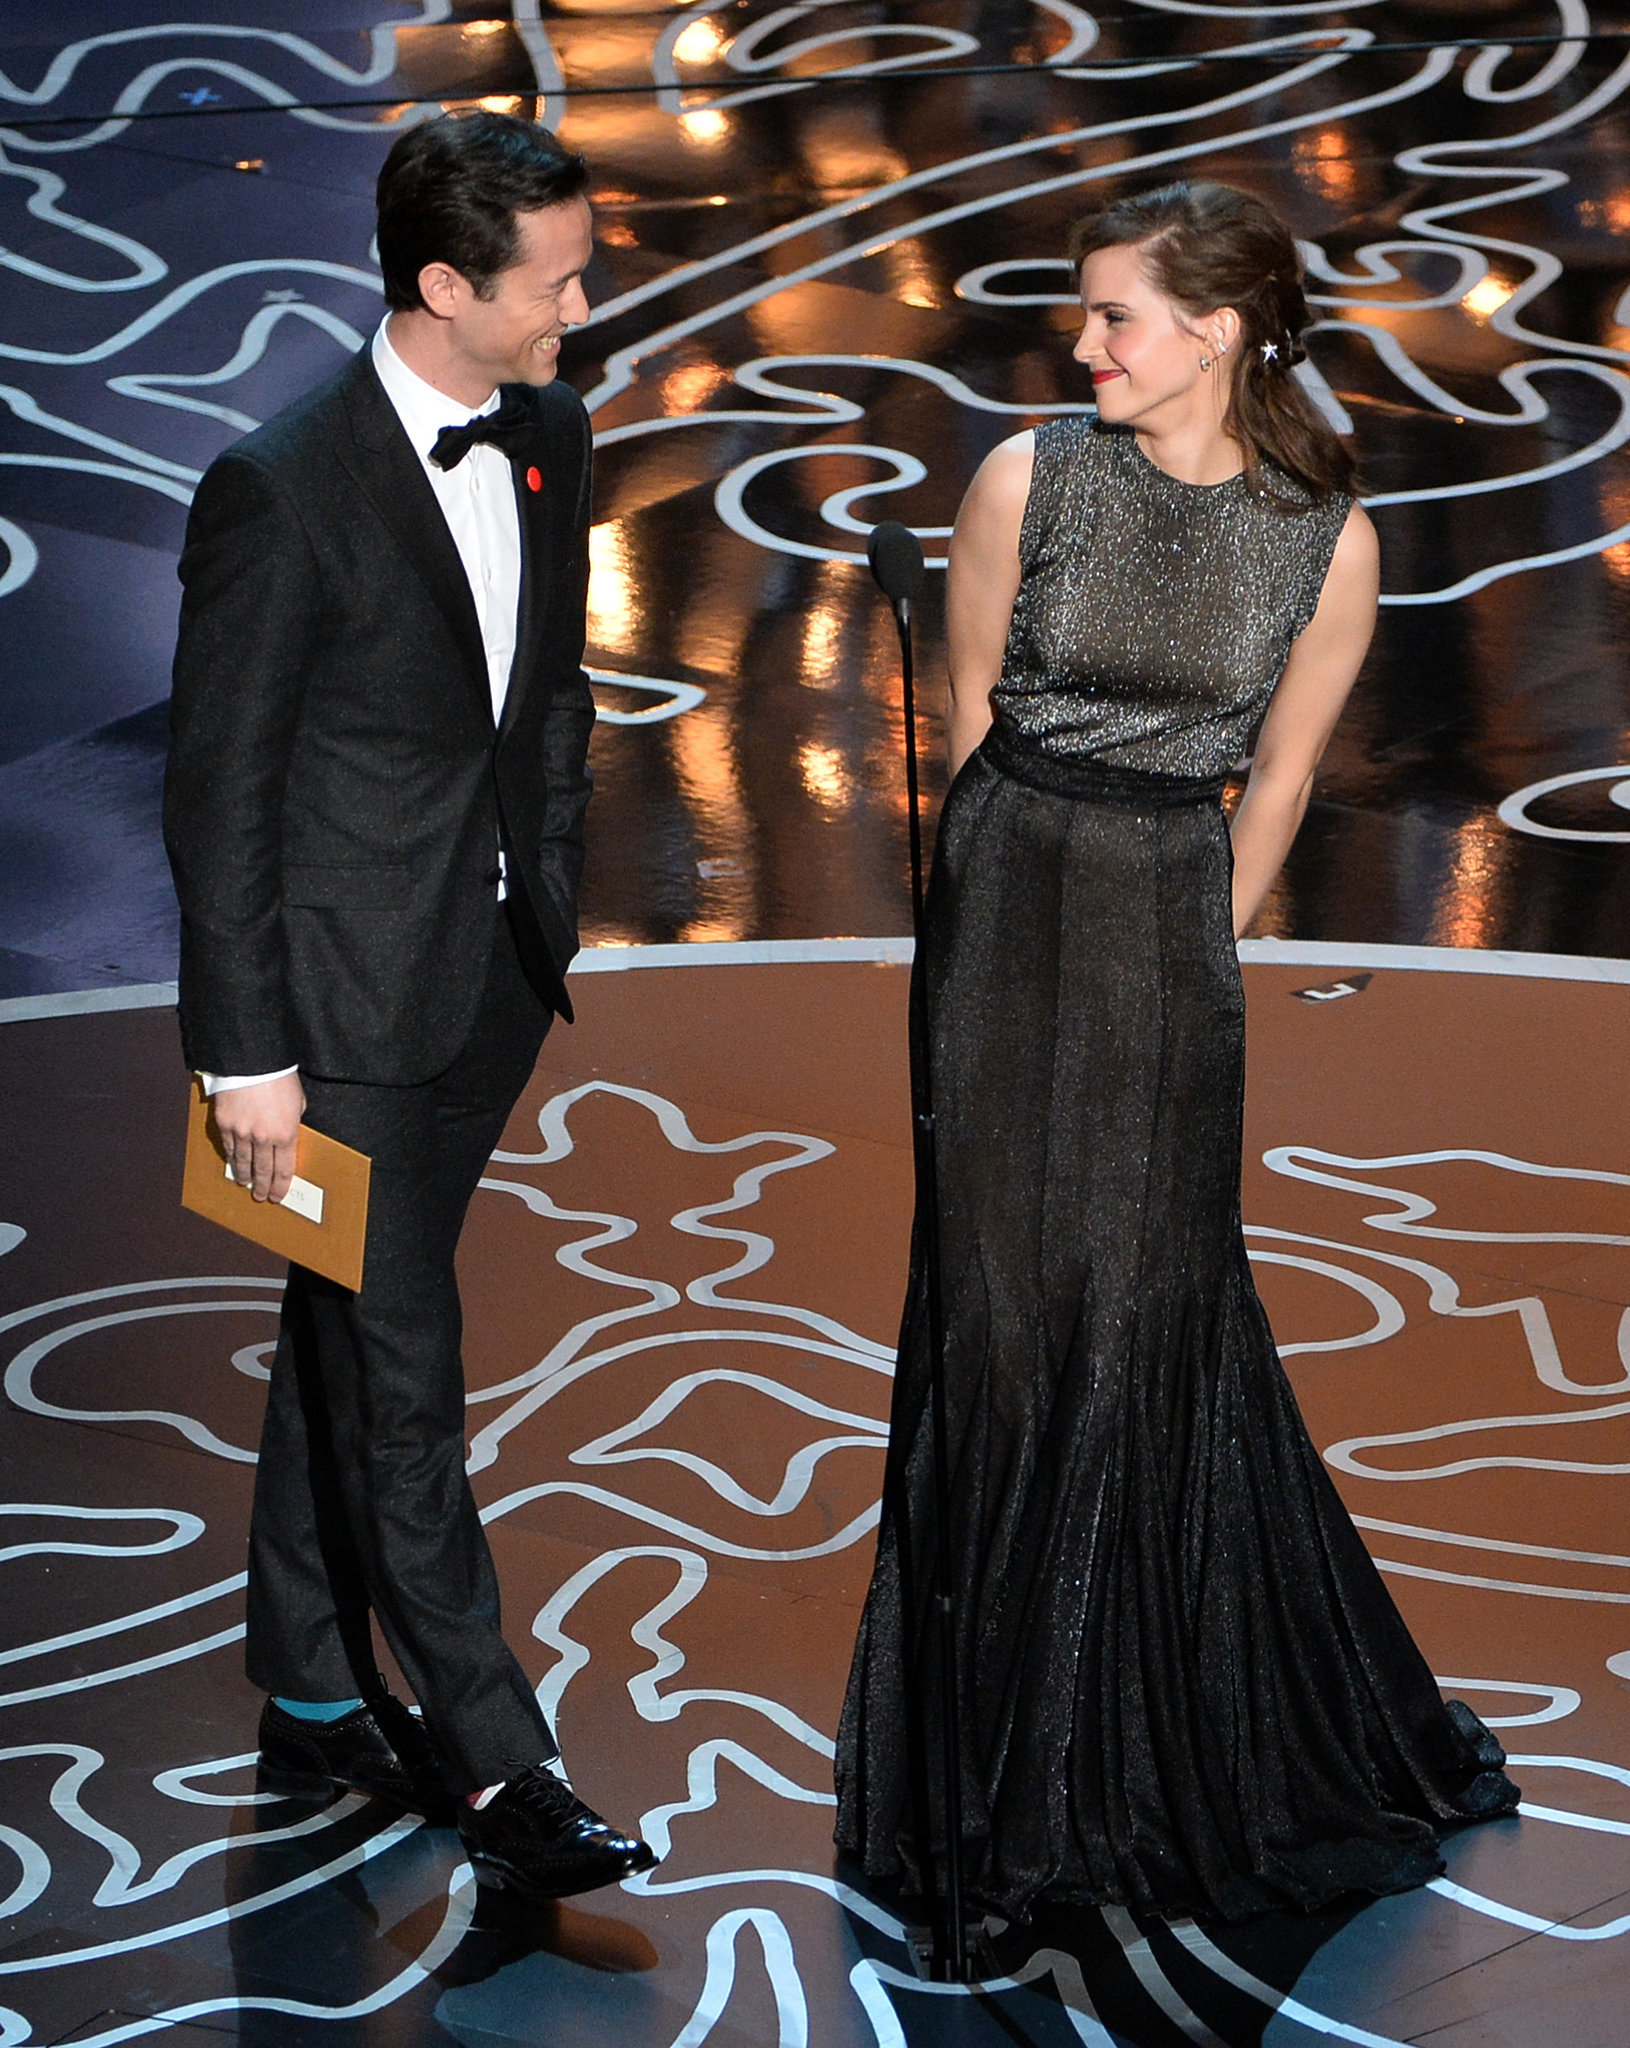 Joseph Gordon-Levitt and Emma Wat